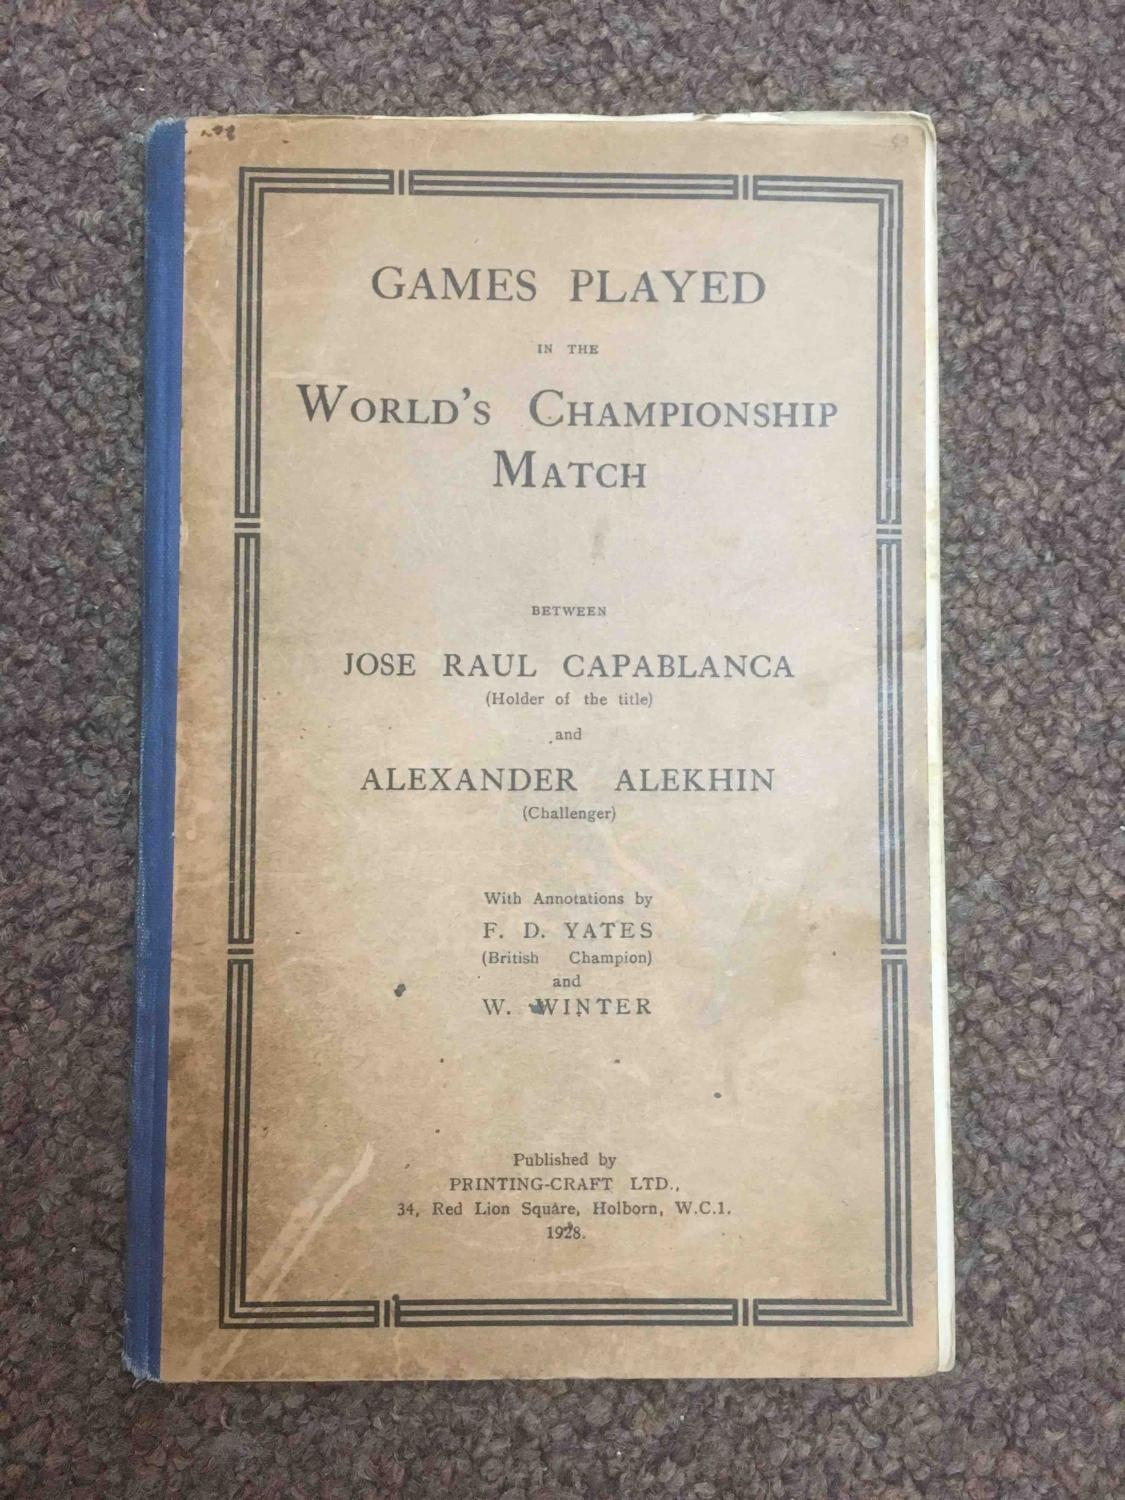 Games Played In the World's Championship Match between Jose Paul Capablanca and Alexander Alekhine, FD Yates and W, Winter, 1928, Printing Craft Limited